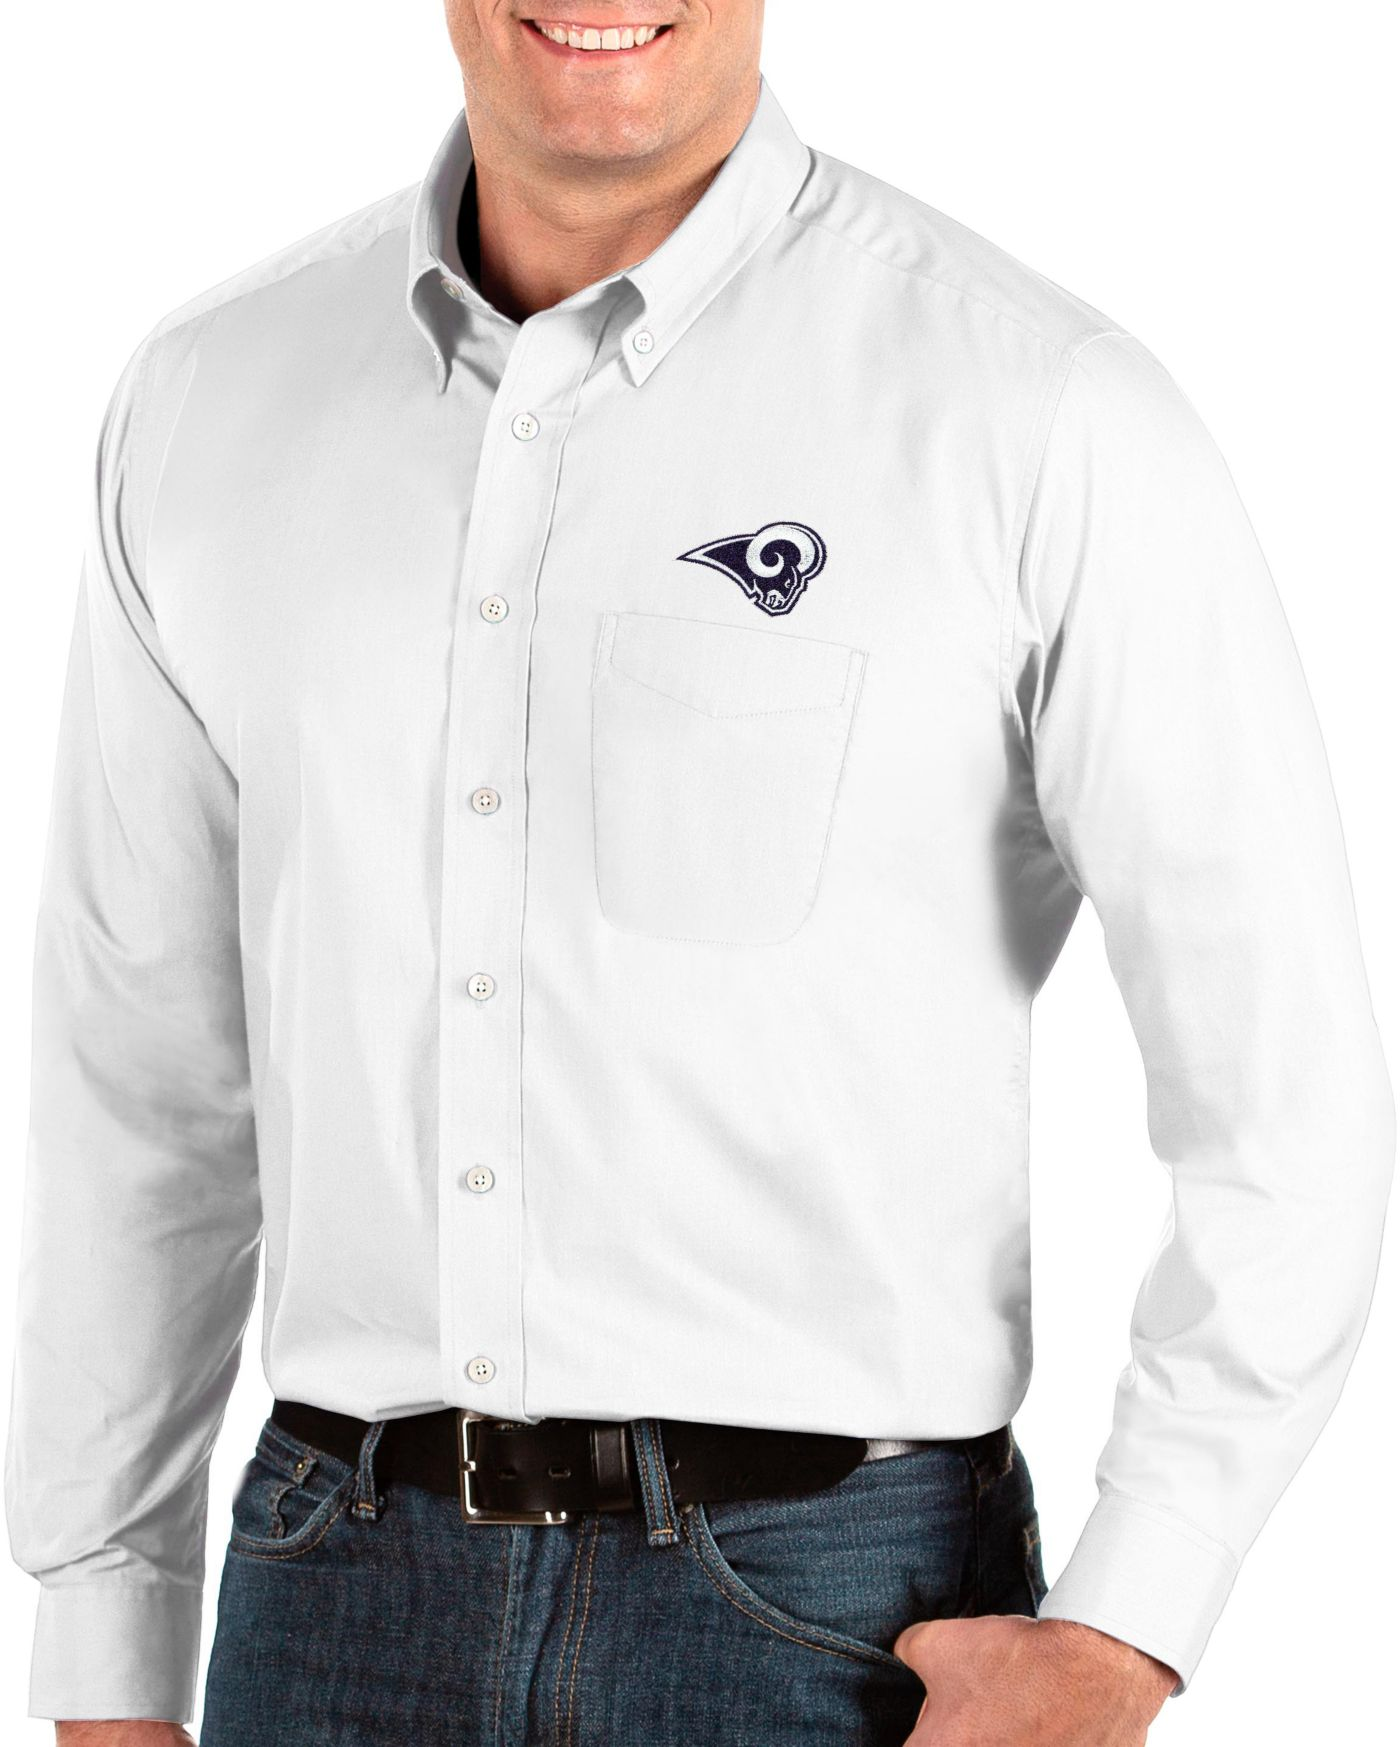 Antigua Men's Los Angeles Rams Dynasty Button Down White Dress Shirt